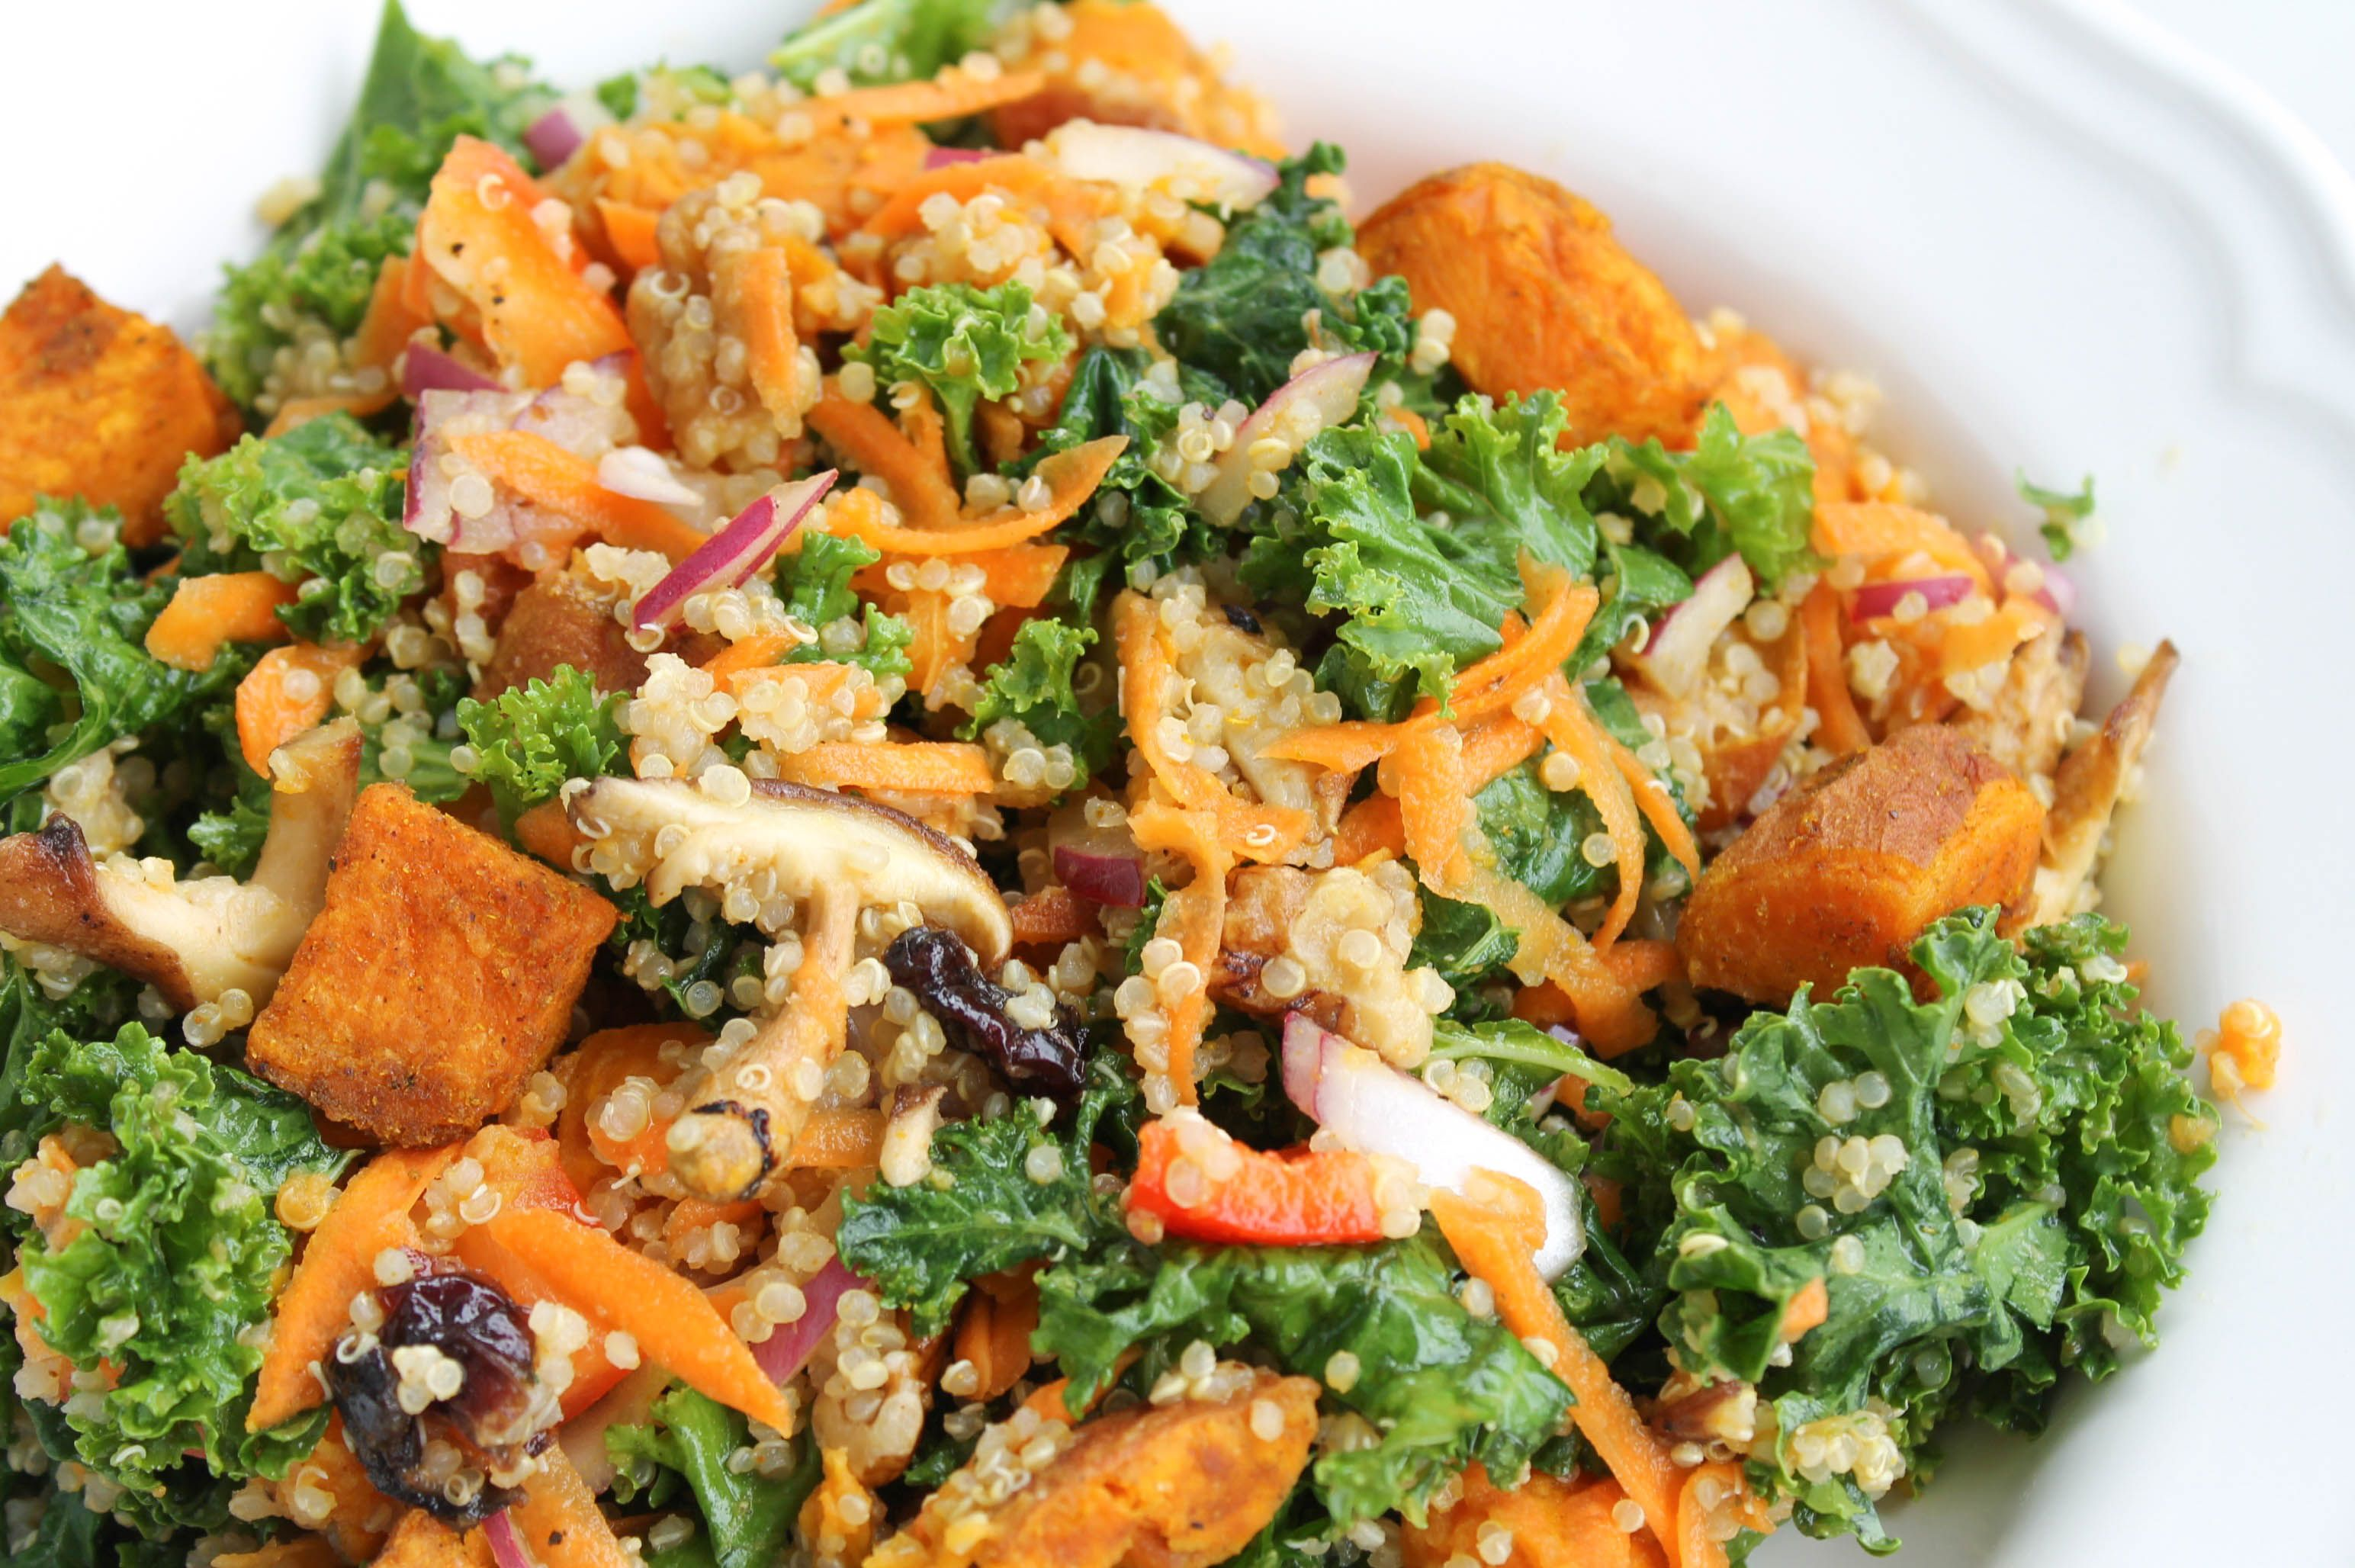 Make a big batch of this Shiitake and Sweet Potato Kale Salad with Miso Ginger Dressing ahead of time for weekday lunches. It Keeps fresh for up to 5 days.